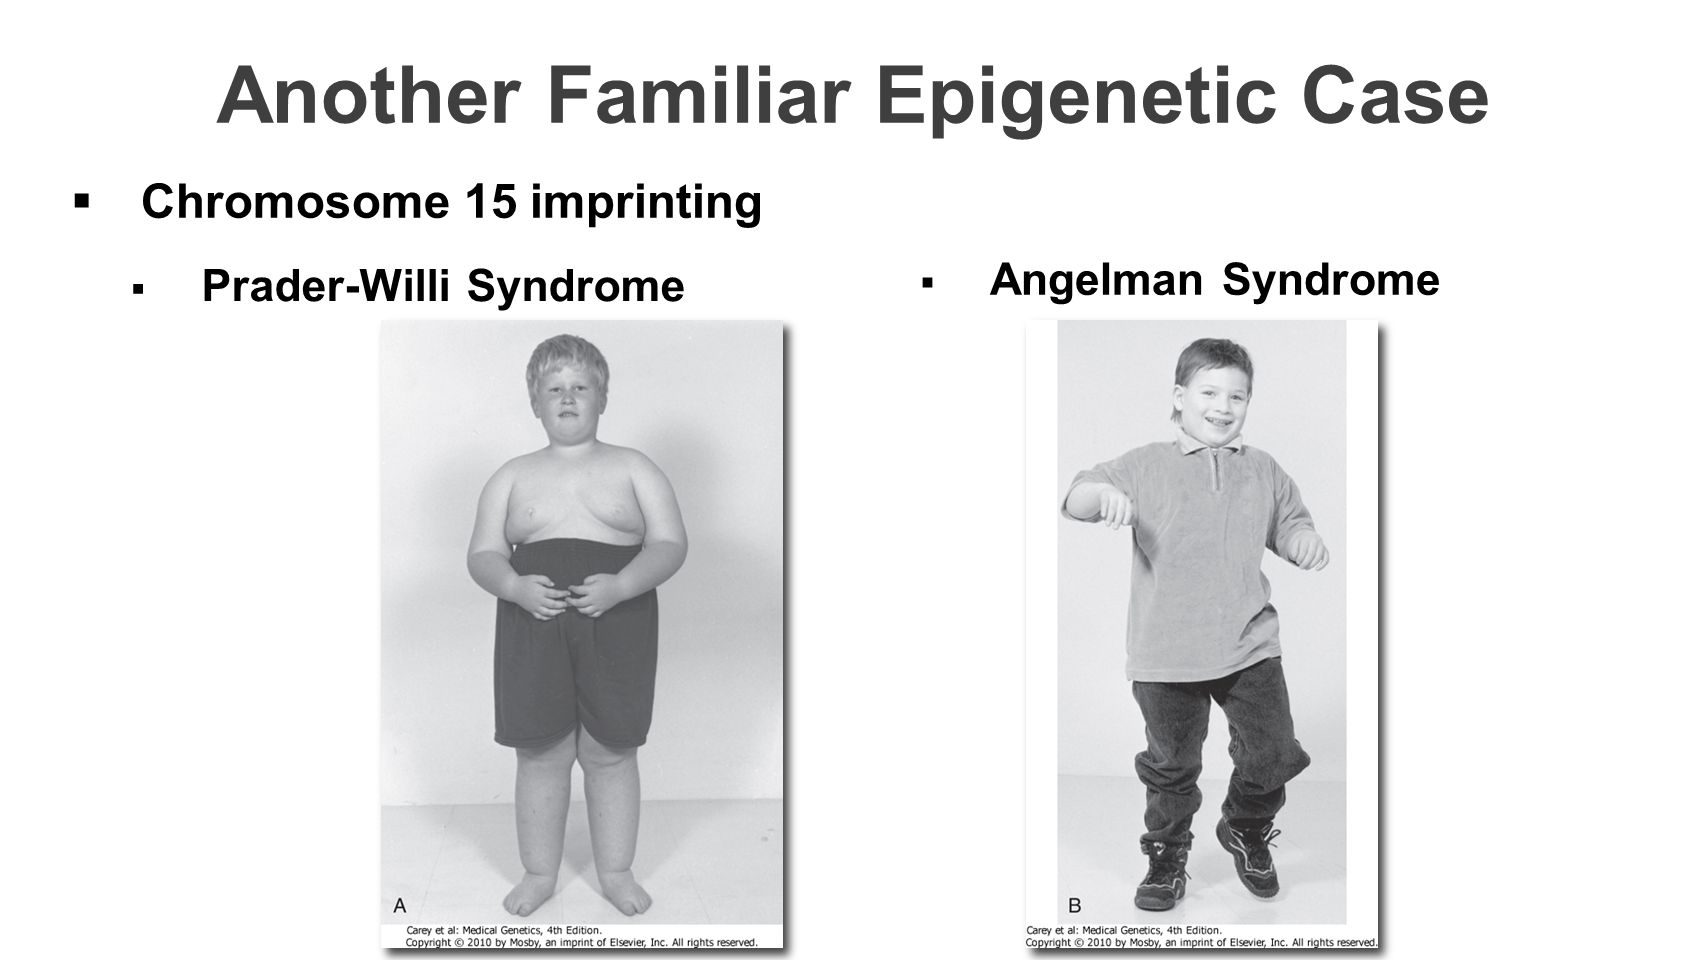 a research on the causes symptoms and treatments of angelman syndrome Learn more about angelman syndrome causes, sign and symptoms, treatment and diagnosis at findatopdoc read more information on homeopathic remedies, risks.